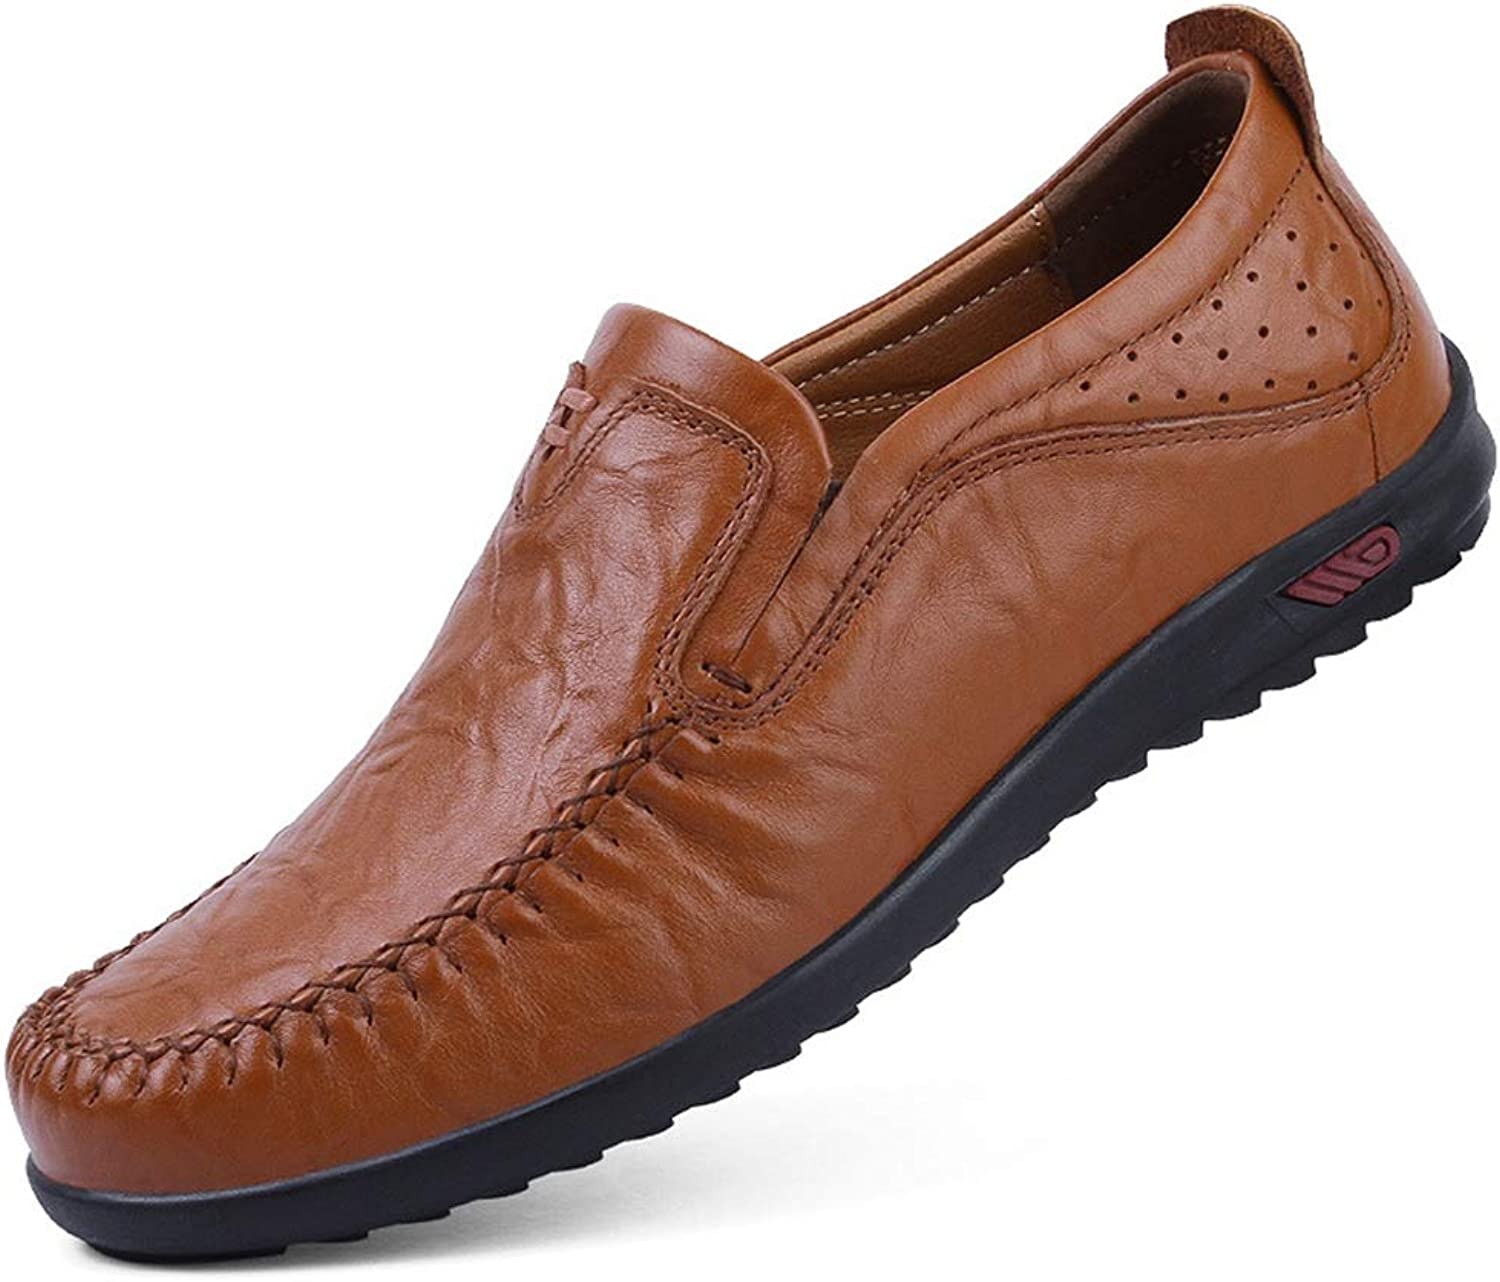 Moccasins Men's Leather Moccasin Loafers Driving shoes Comfort Slip-on Penny Loafers Moccasin-Gommino Casual Walking Boat shoes Casual